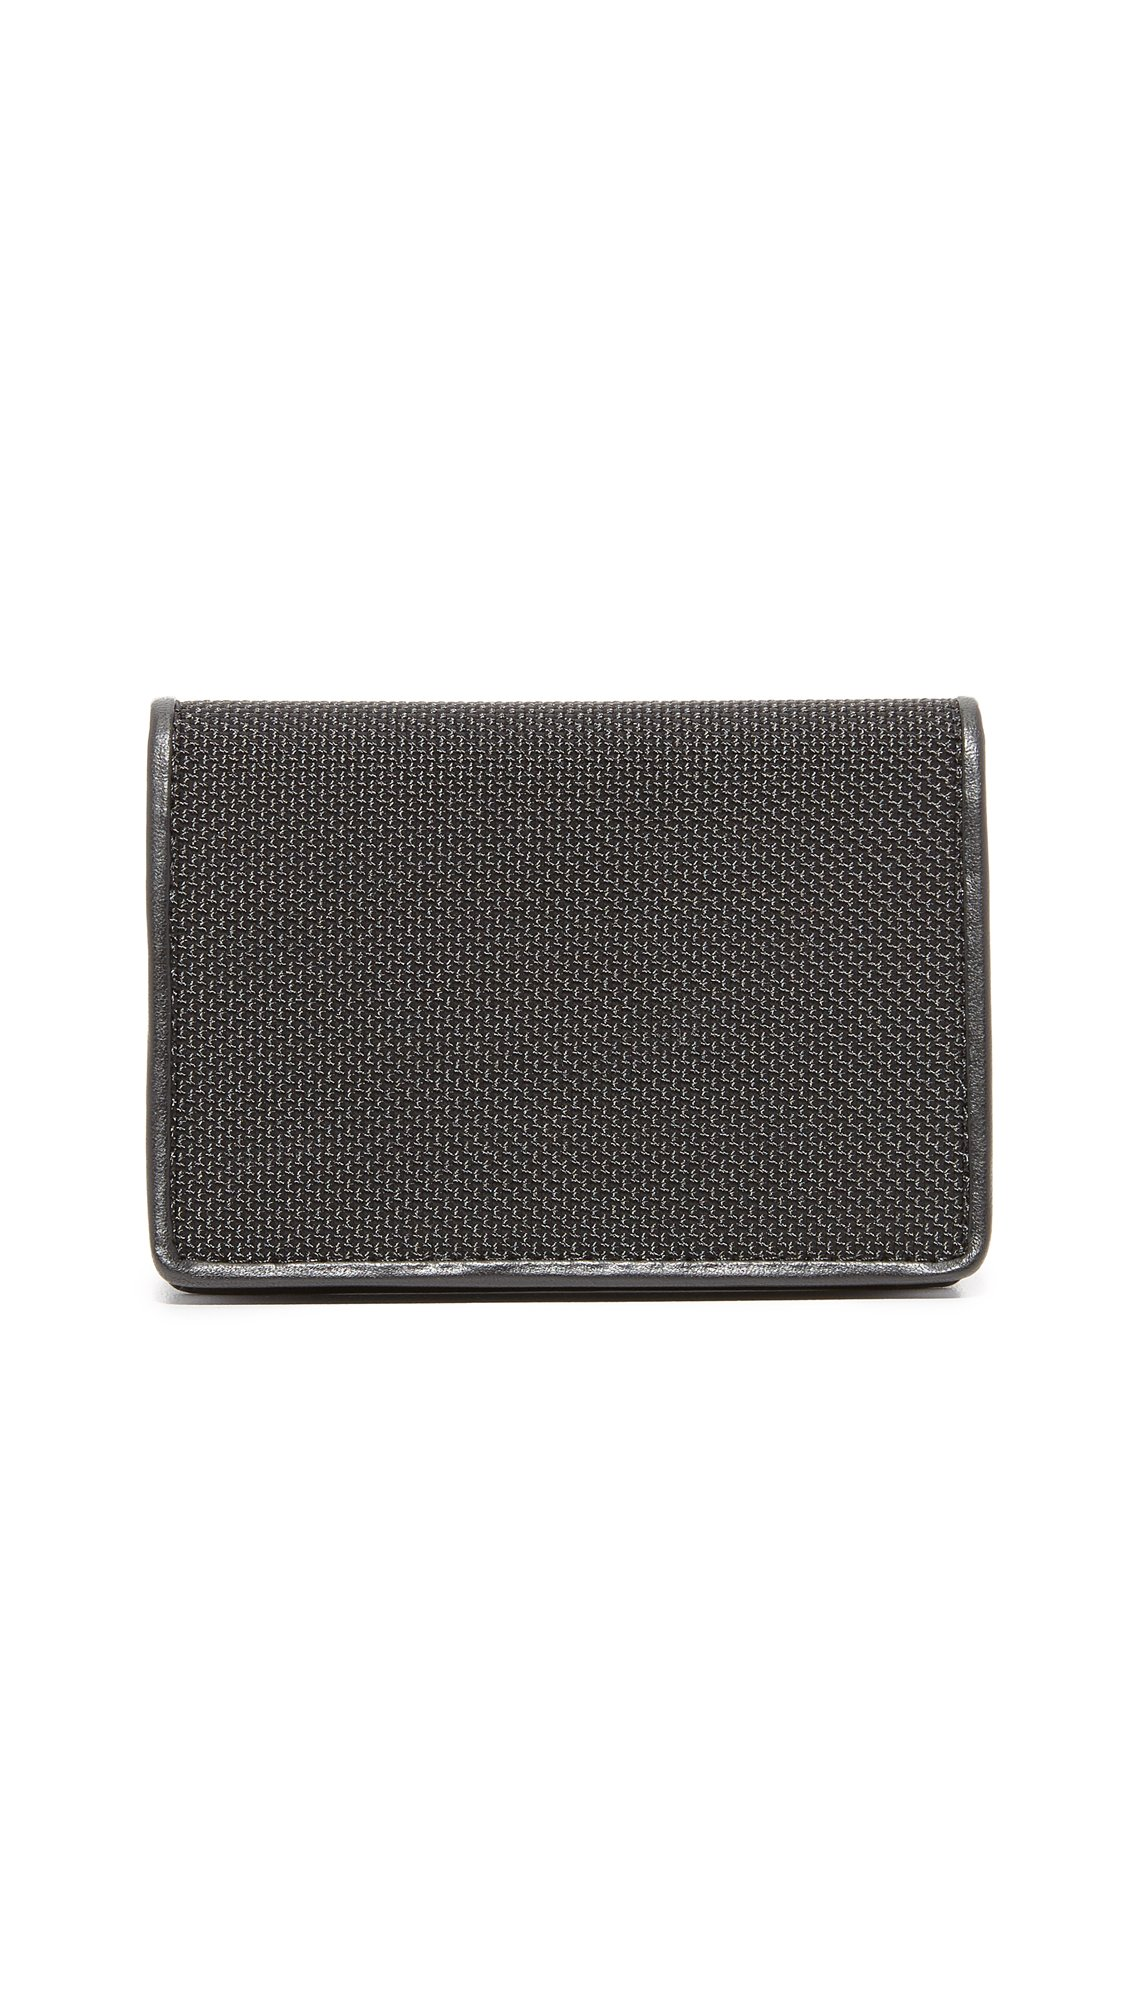 Tumi Alpha Gusseted Card Case with ID,Black,one size by Tumi (Image #3)